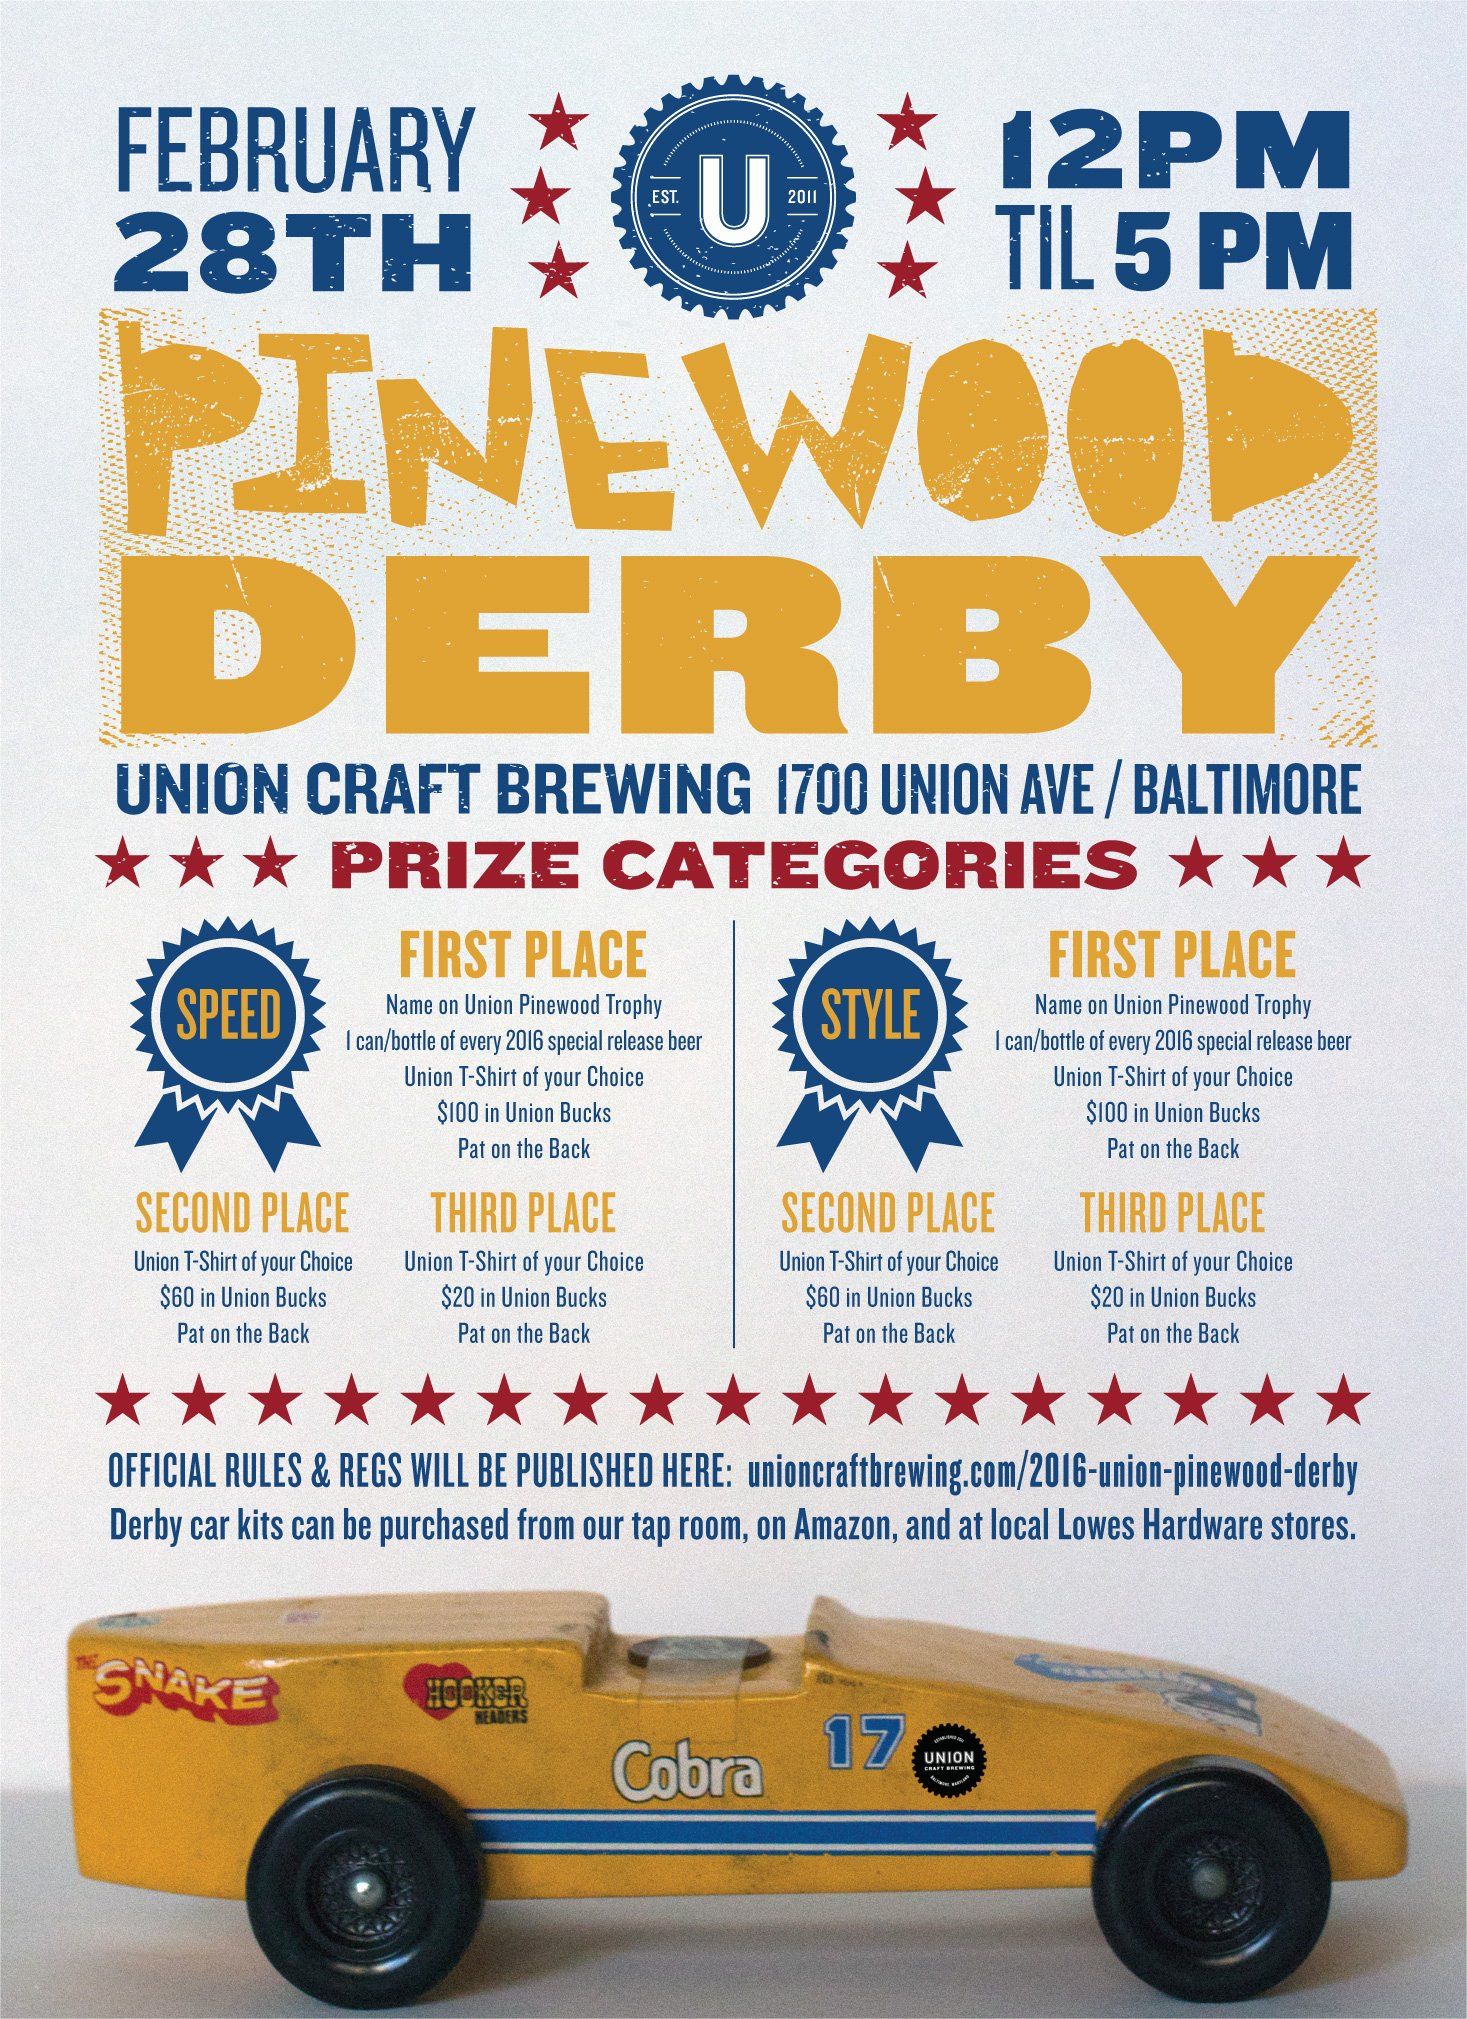 Pinewood Derby Flyer Template Best Of Union Craft Brewing 2016 Union Pinewood Derby Union